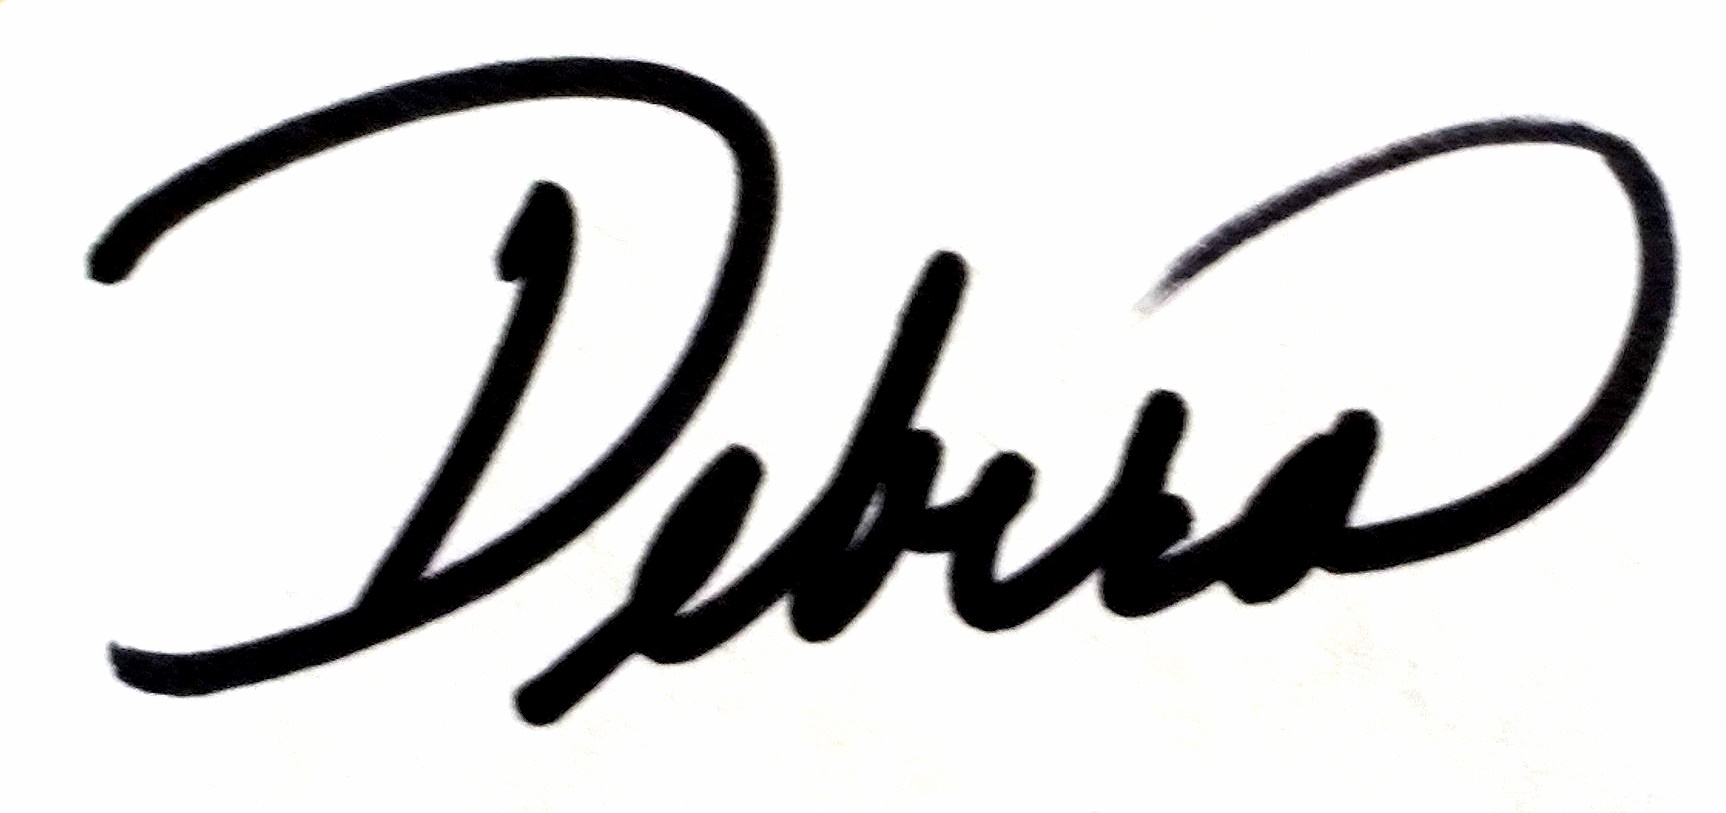 Debra Fishpaw Signature